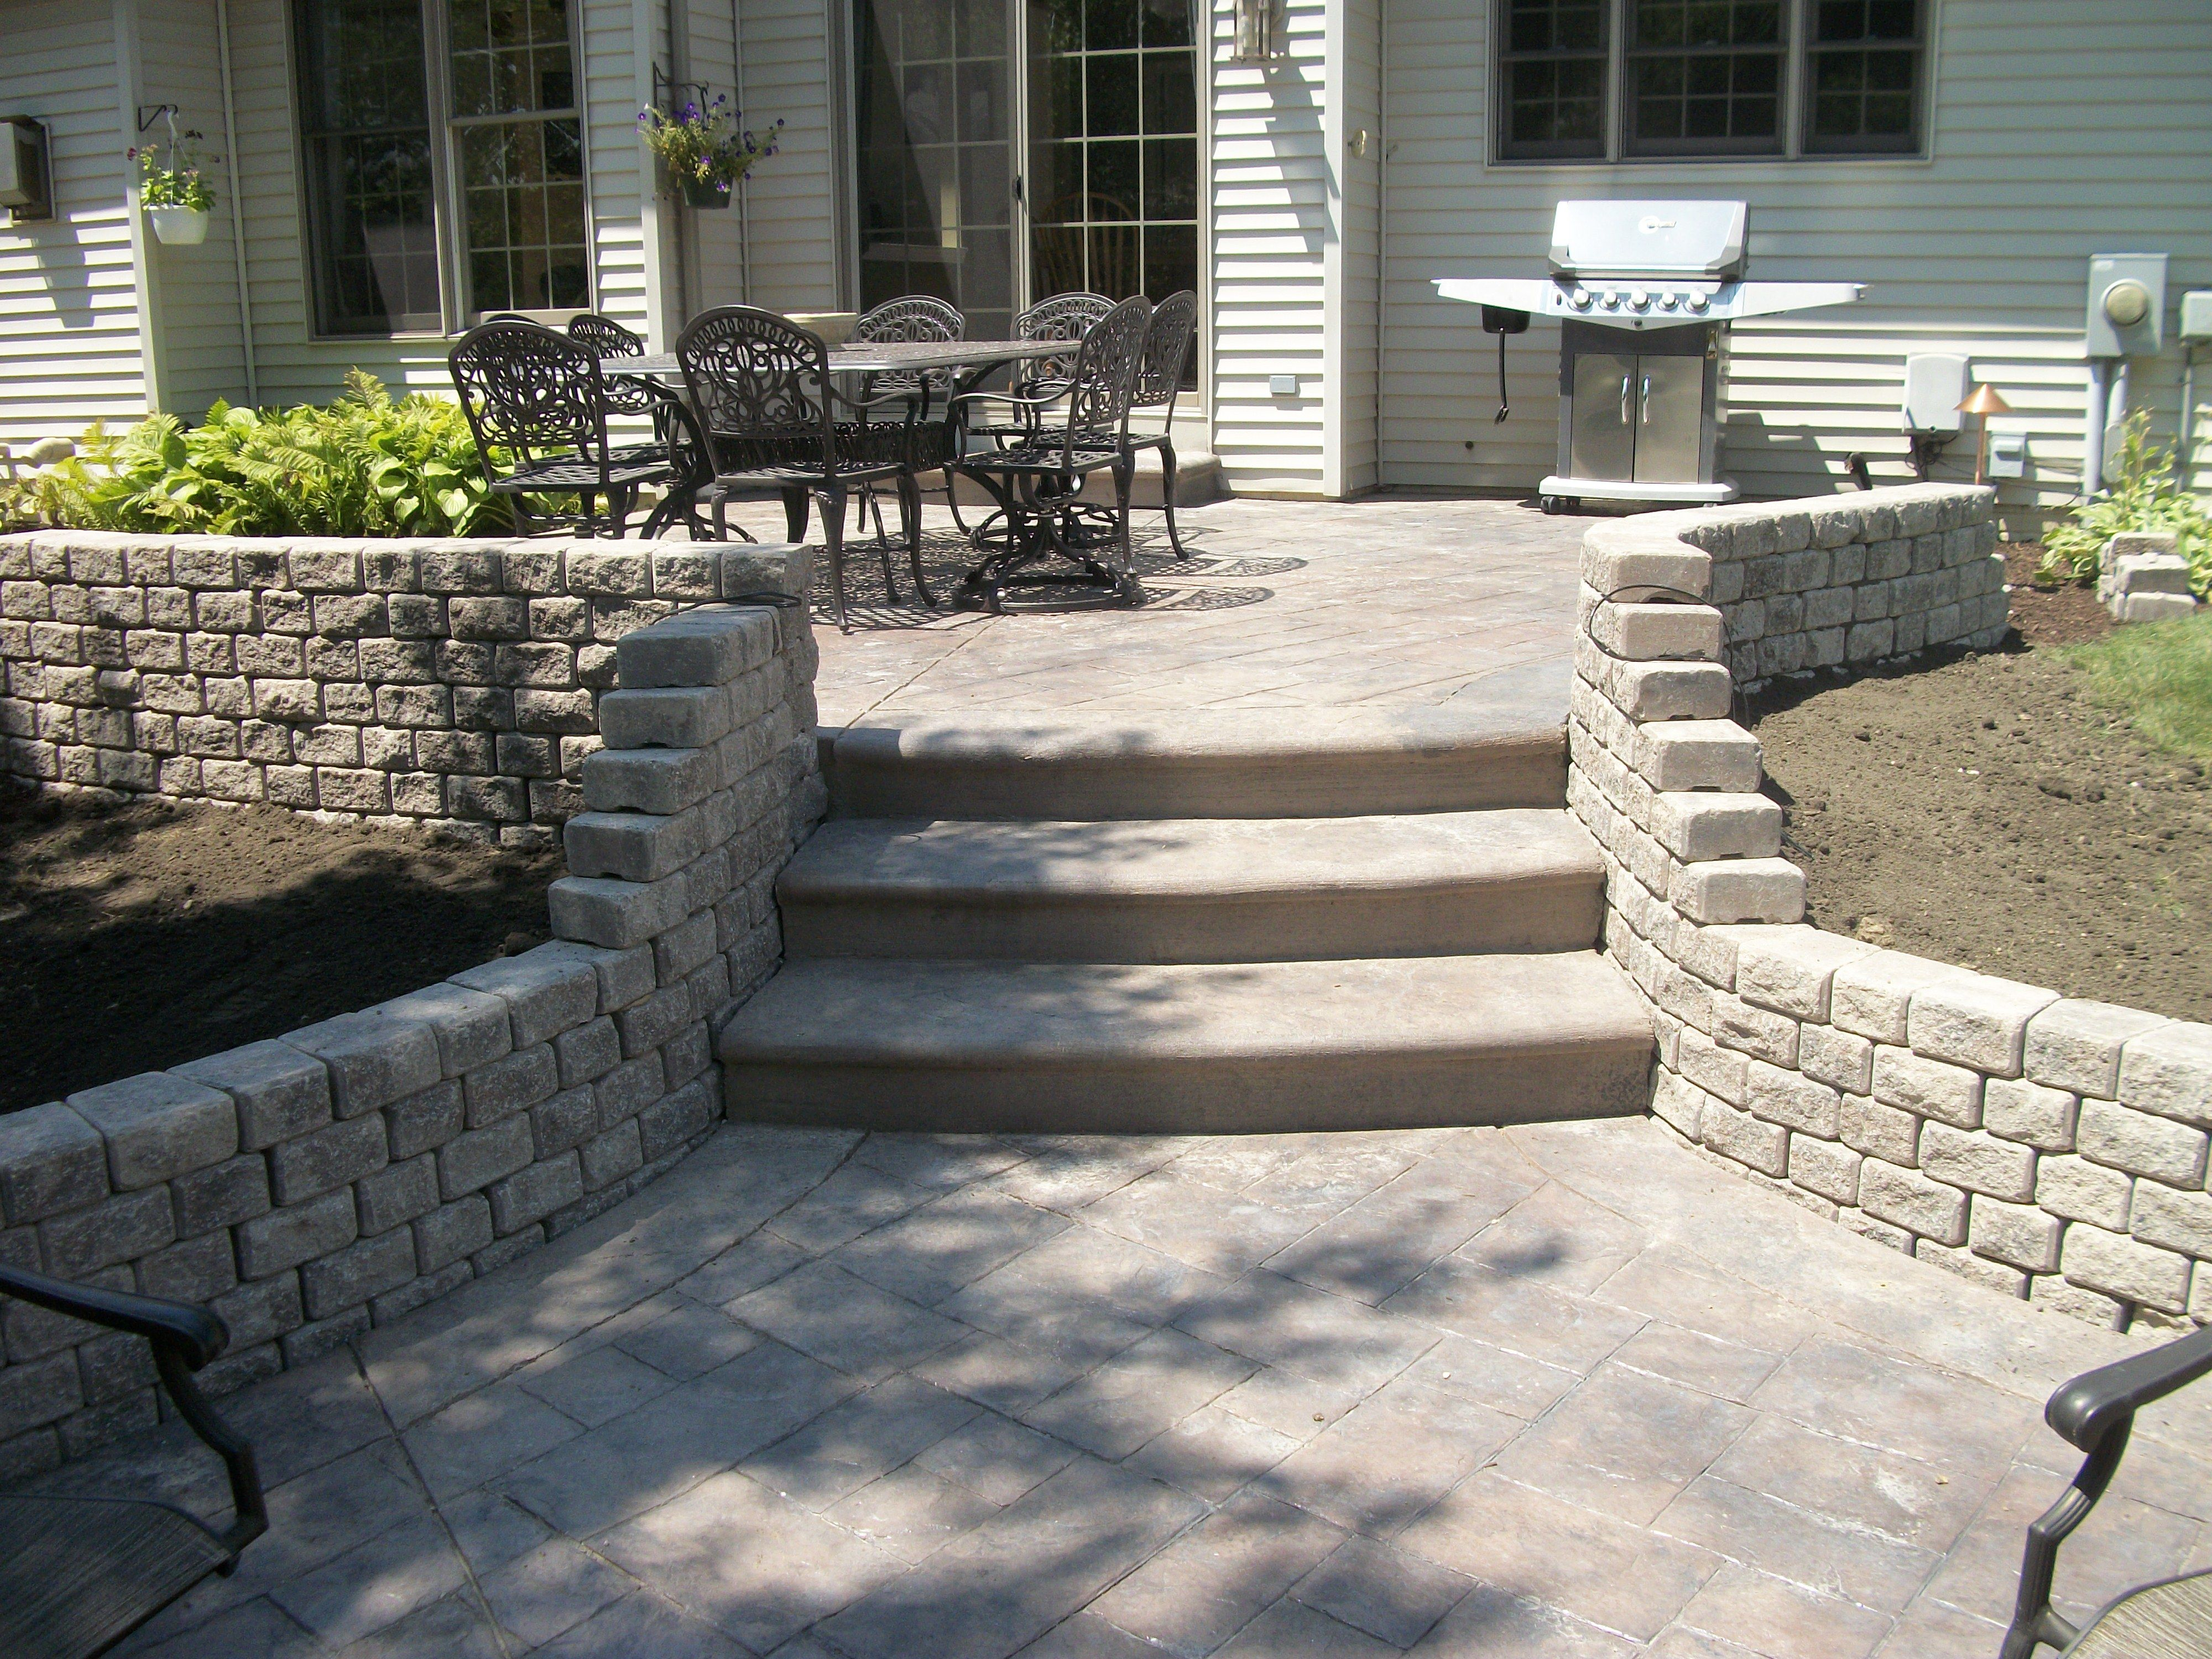 Stamped Concrete Patio With Steps And Retaining Wall Ashler Slate Pattern Patio Pavers Design Stamped Concrete Patio Garden Patio Furniture